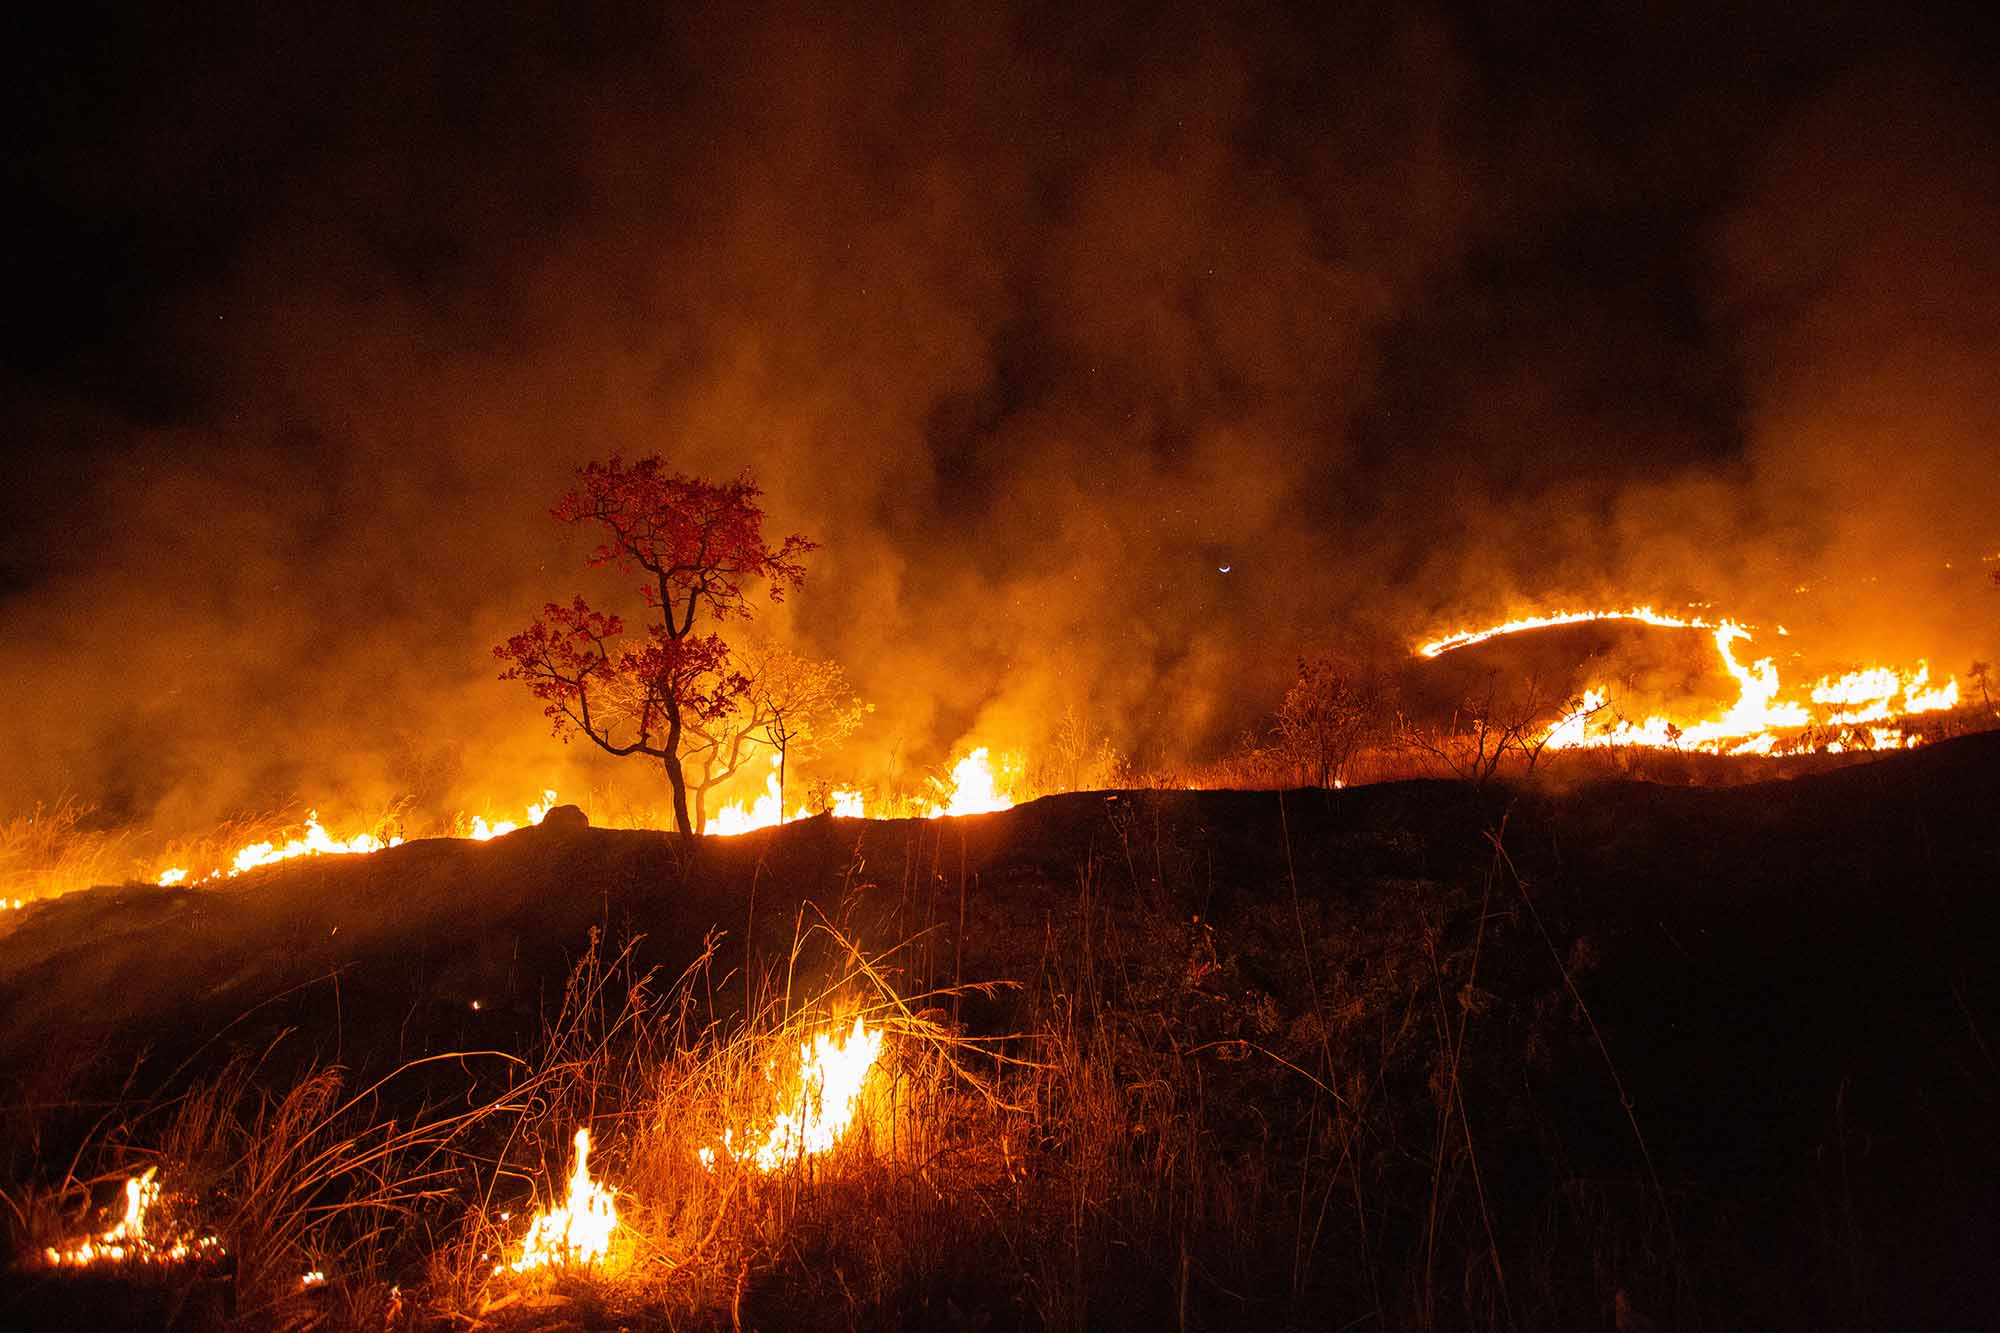 A bright orange fire burns on a hill as smoke rises on blackened earth.